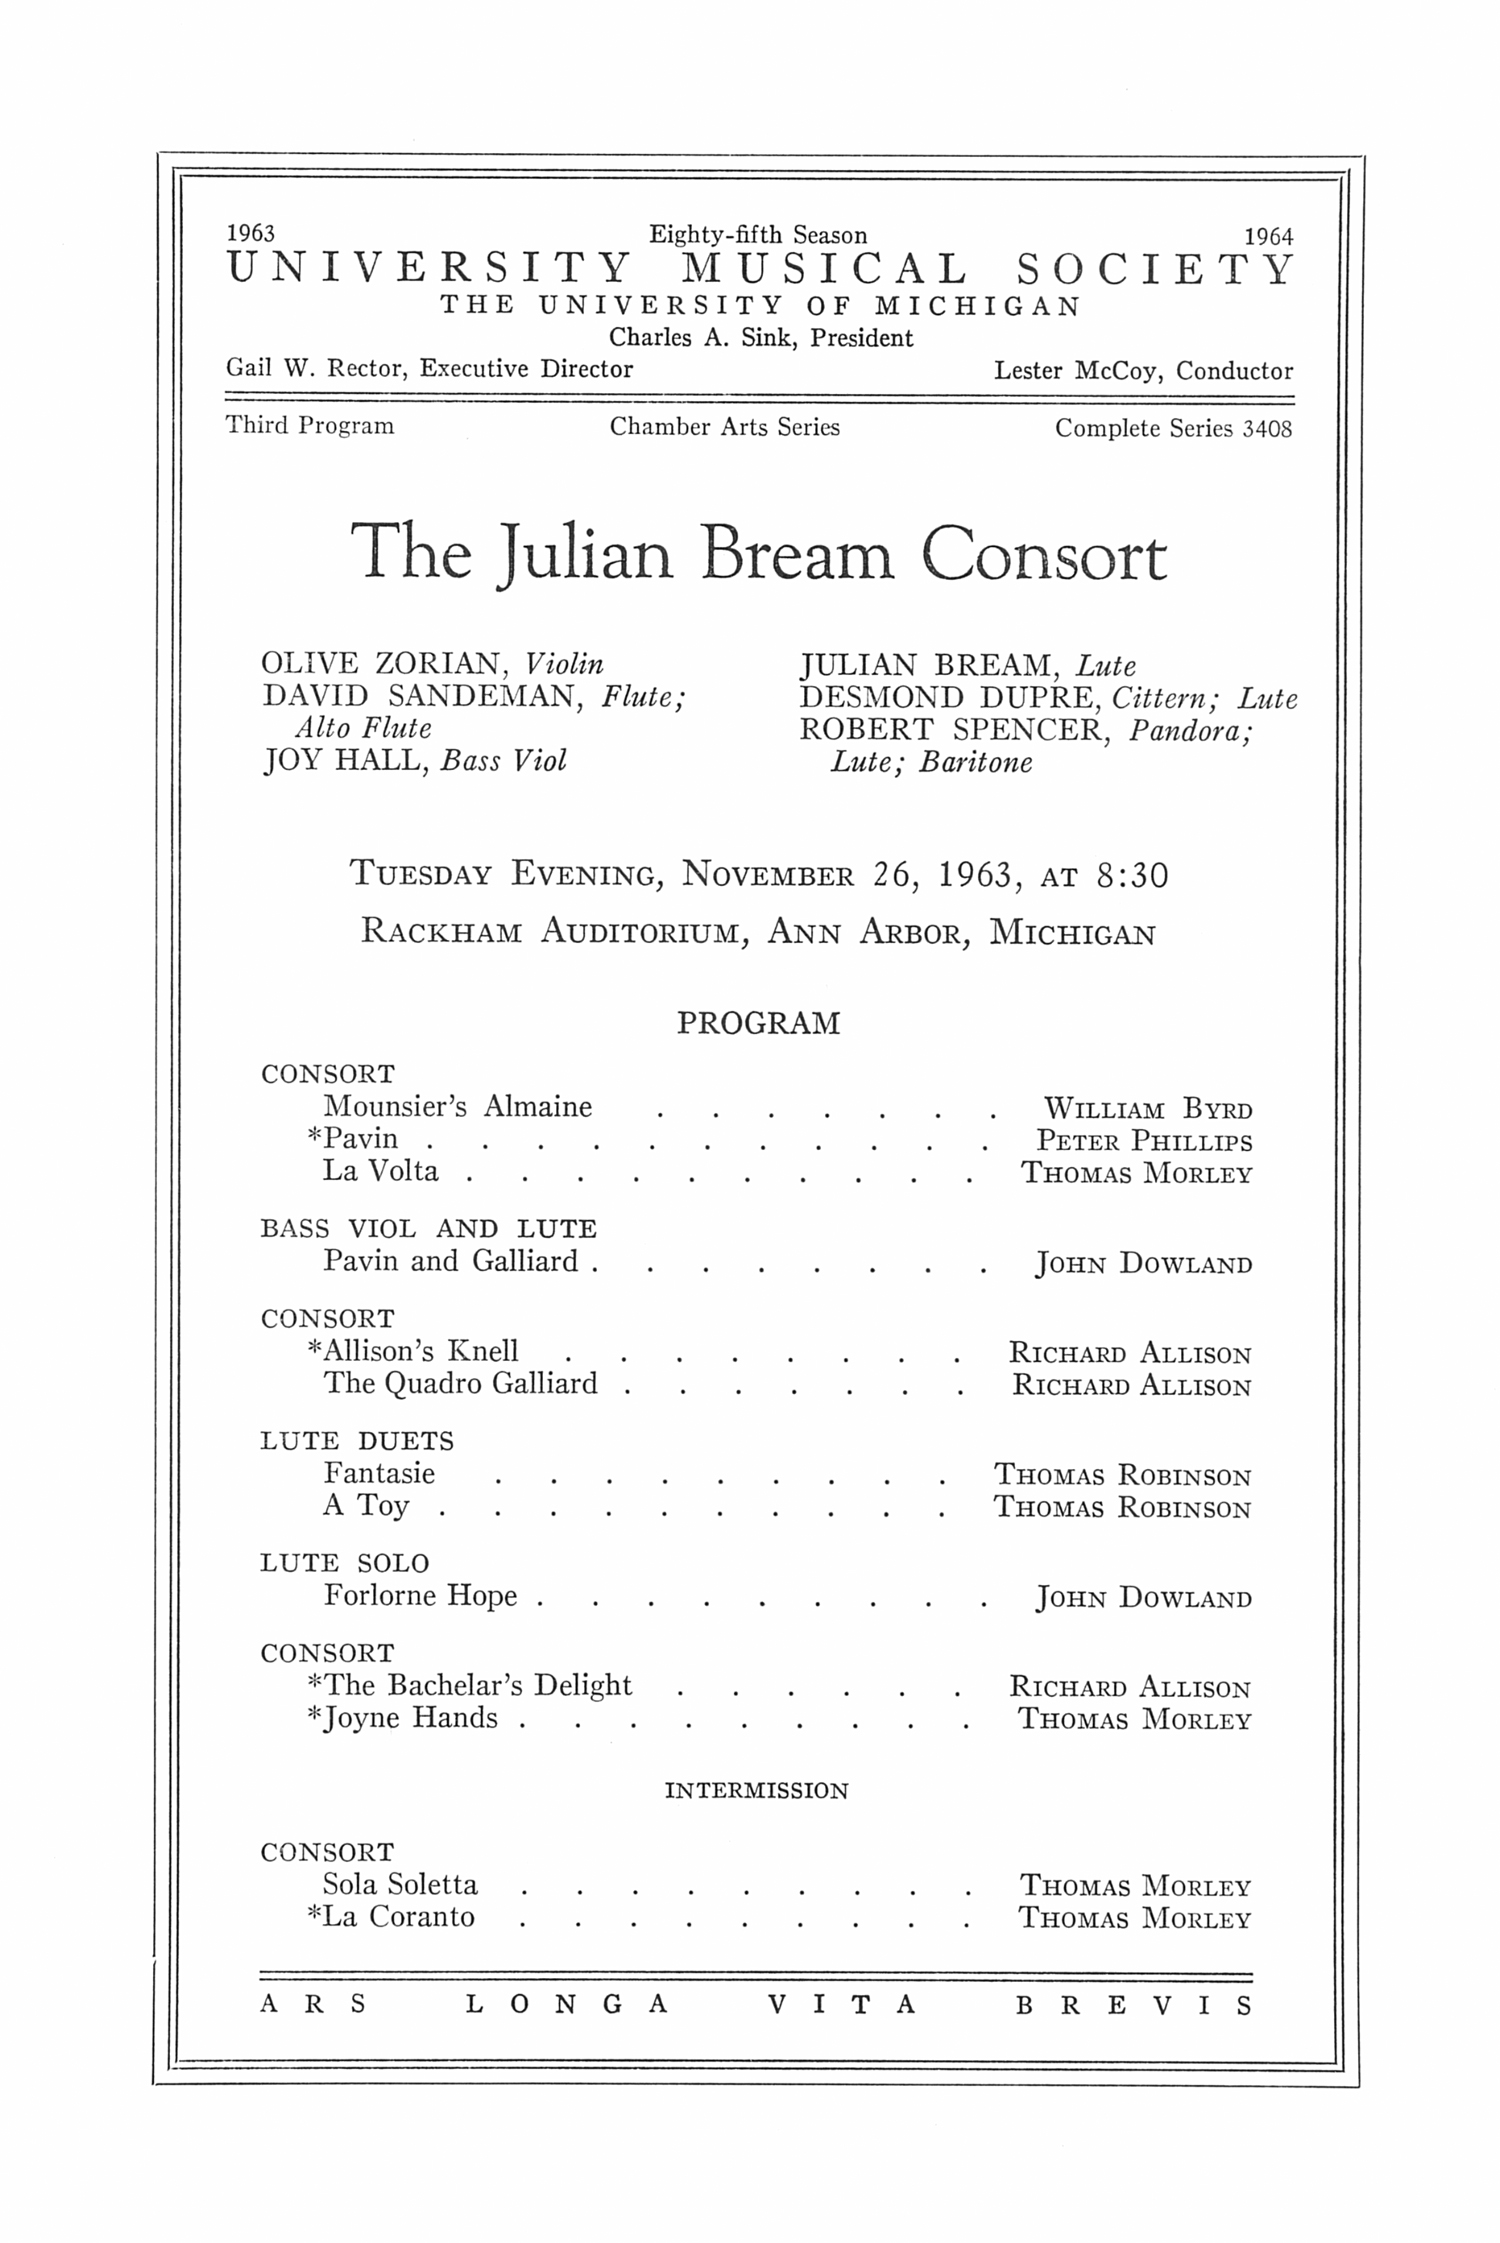 UMS Concert Program, November 26, 1963: The Julian Bream Consort --  image